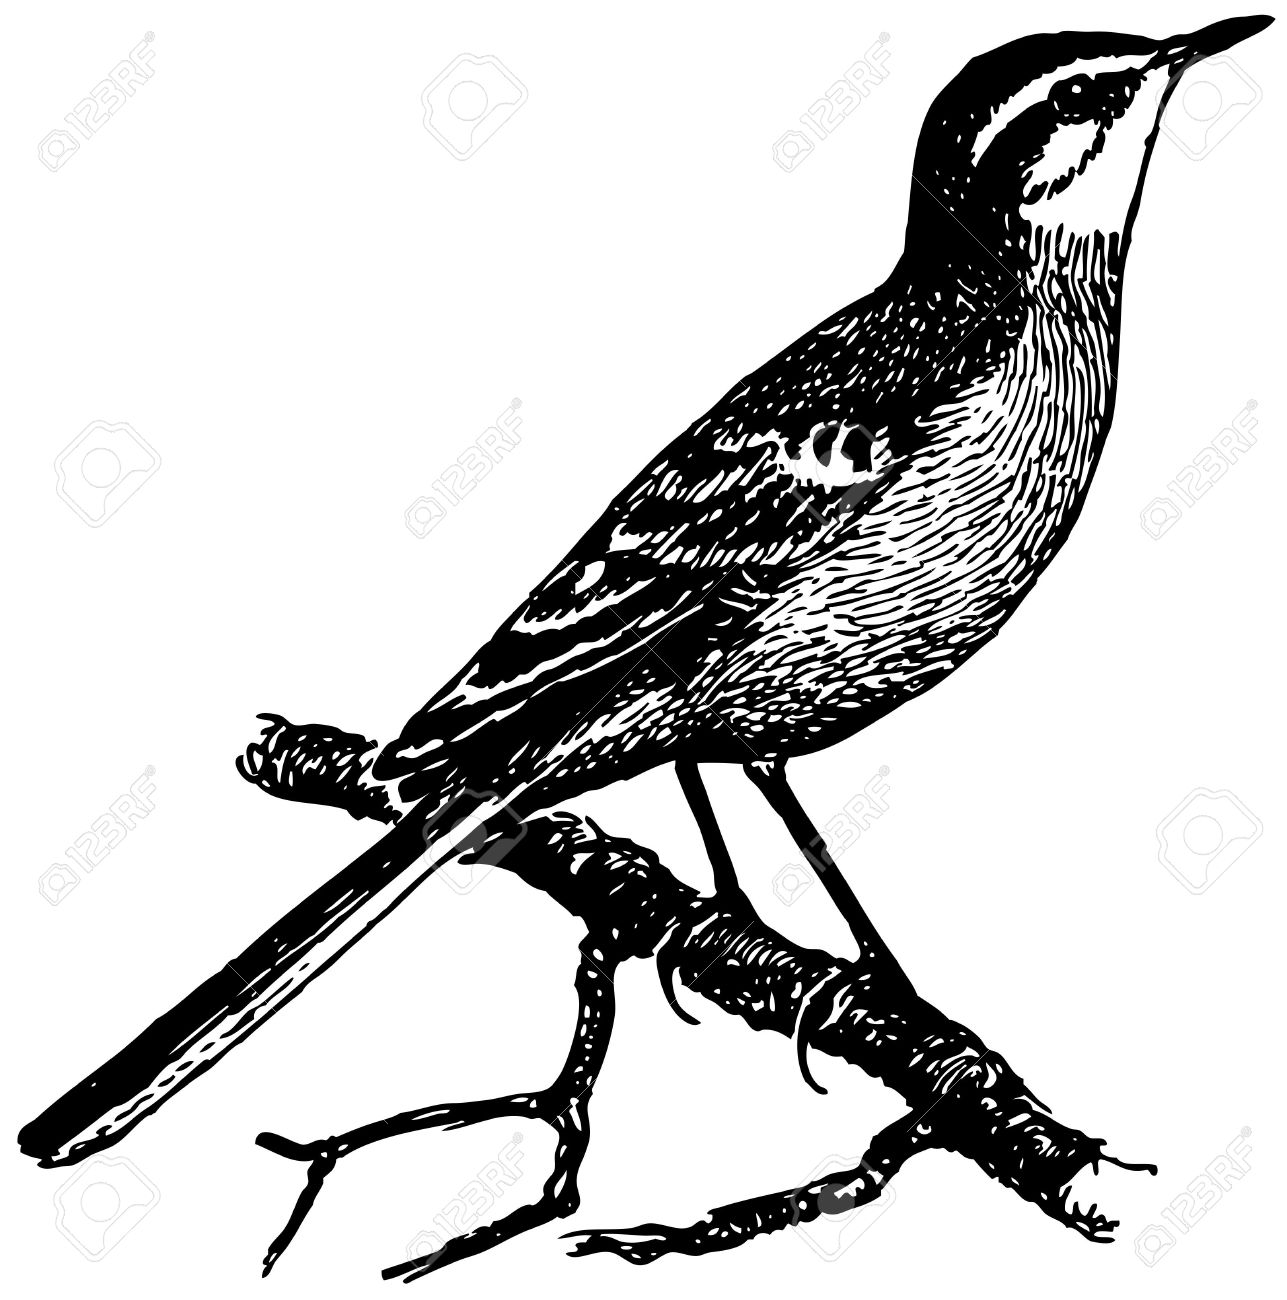 Wagtail clipart #6, Download drawings